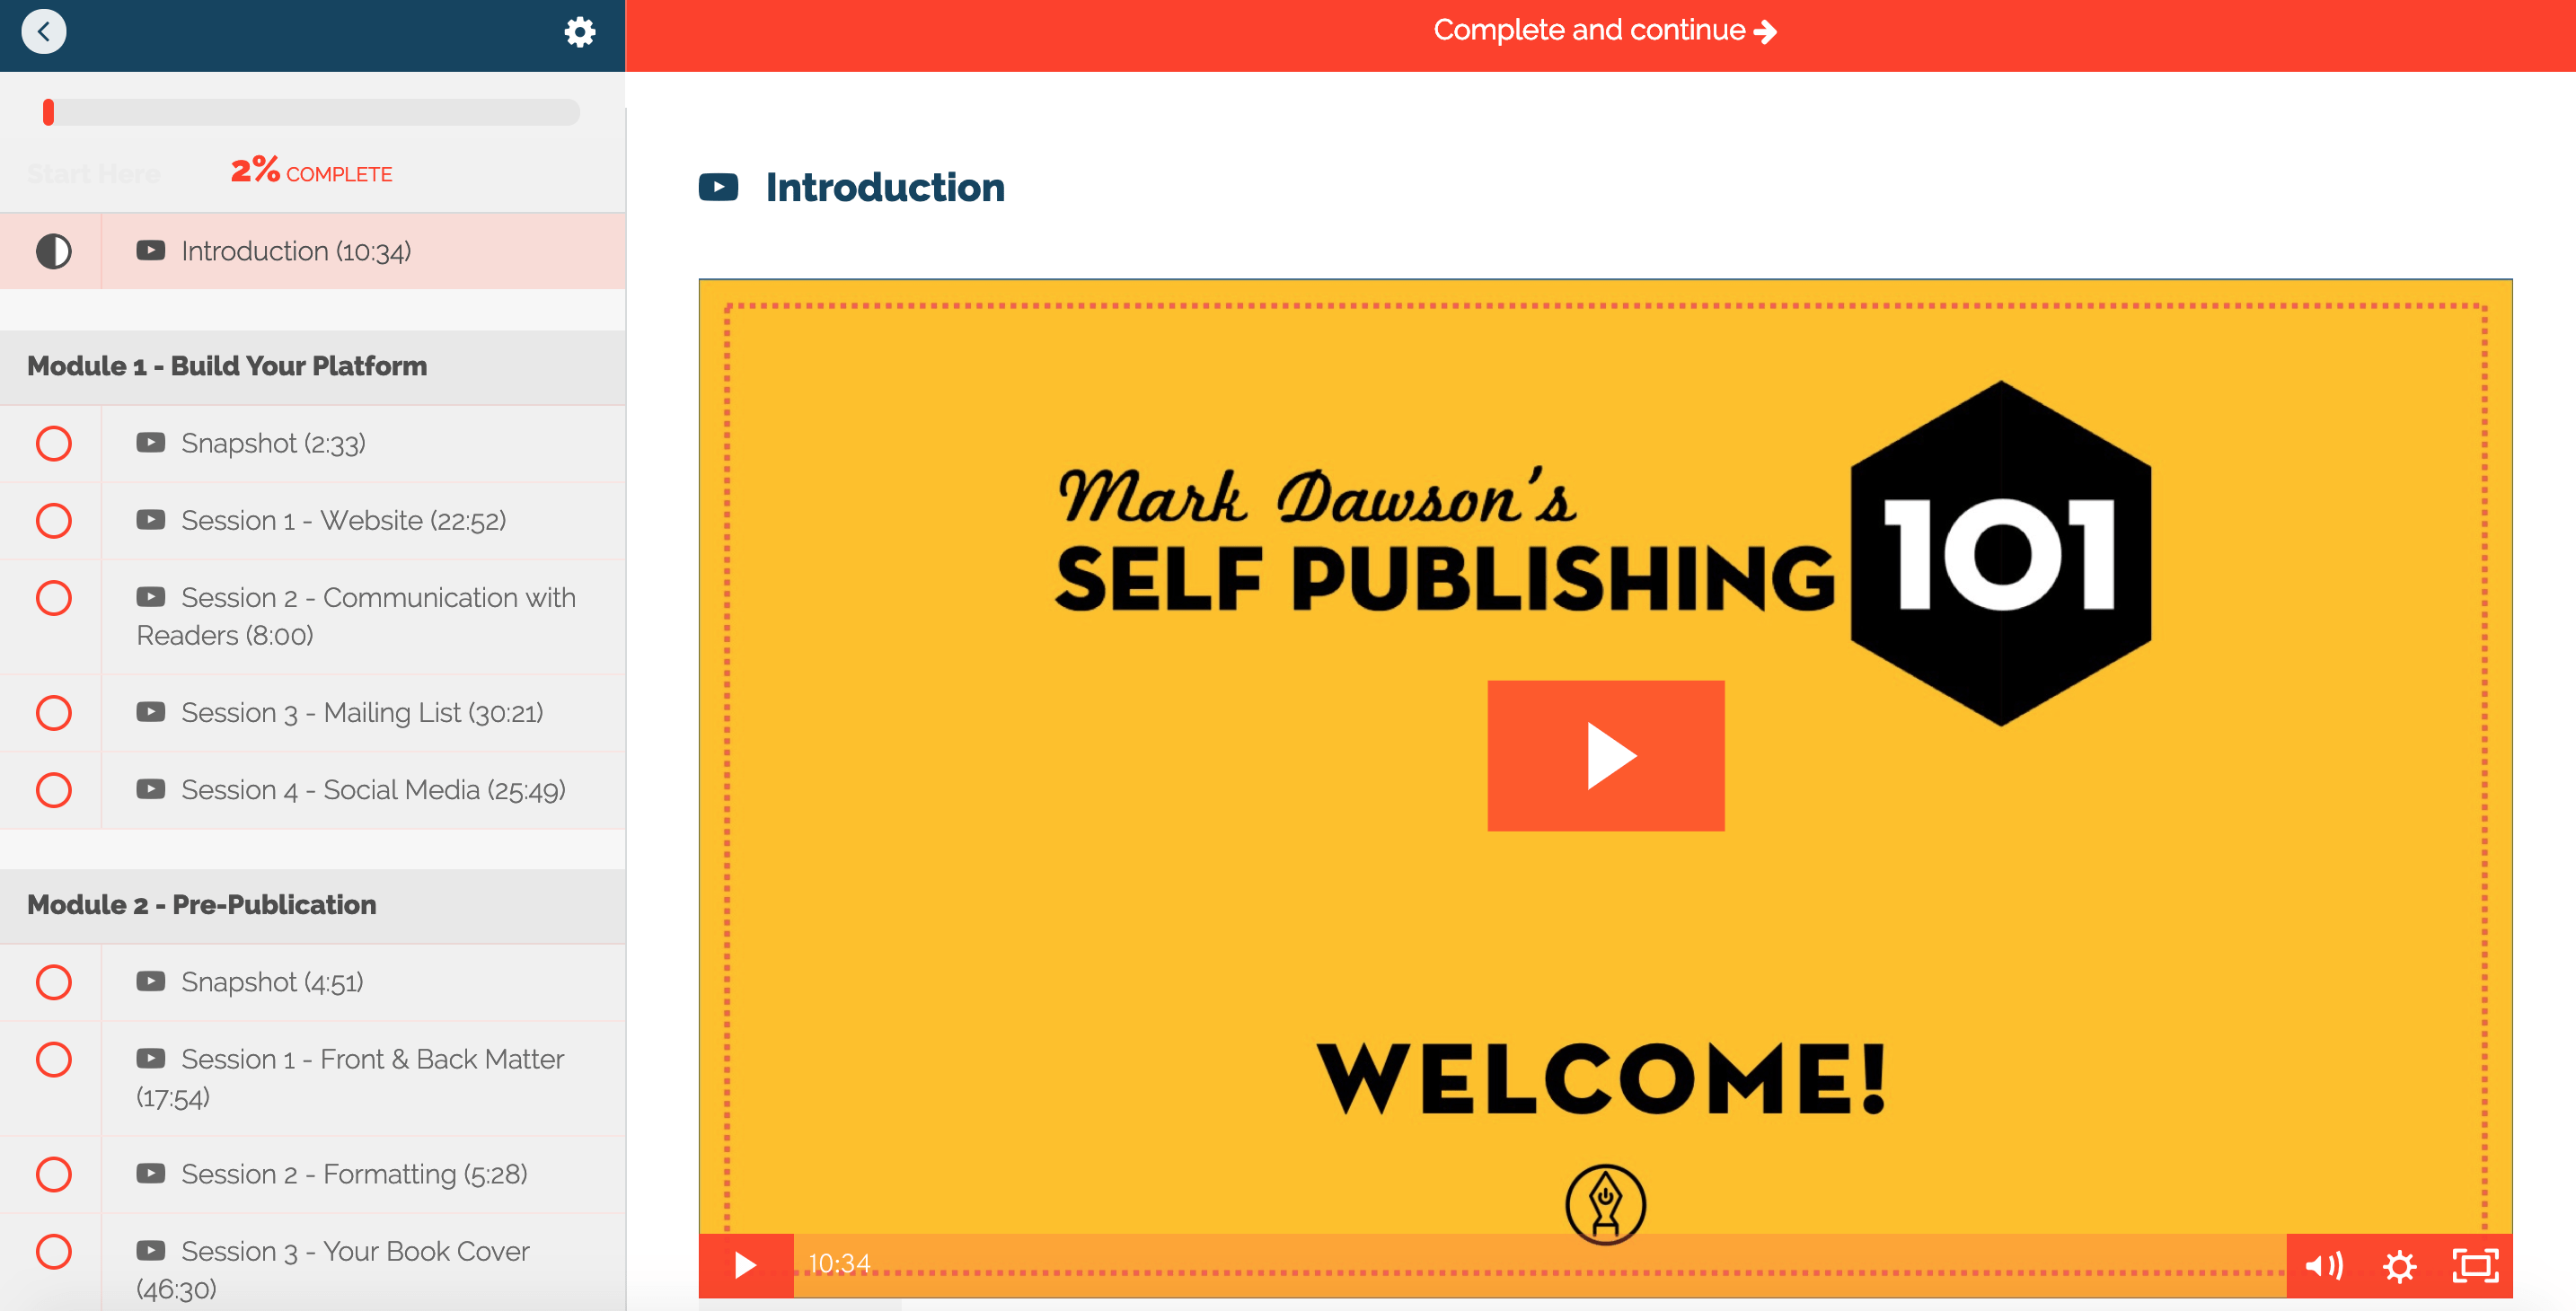 Mark Dawson's Self Publishing Formula